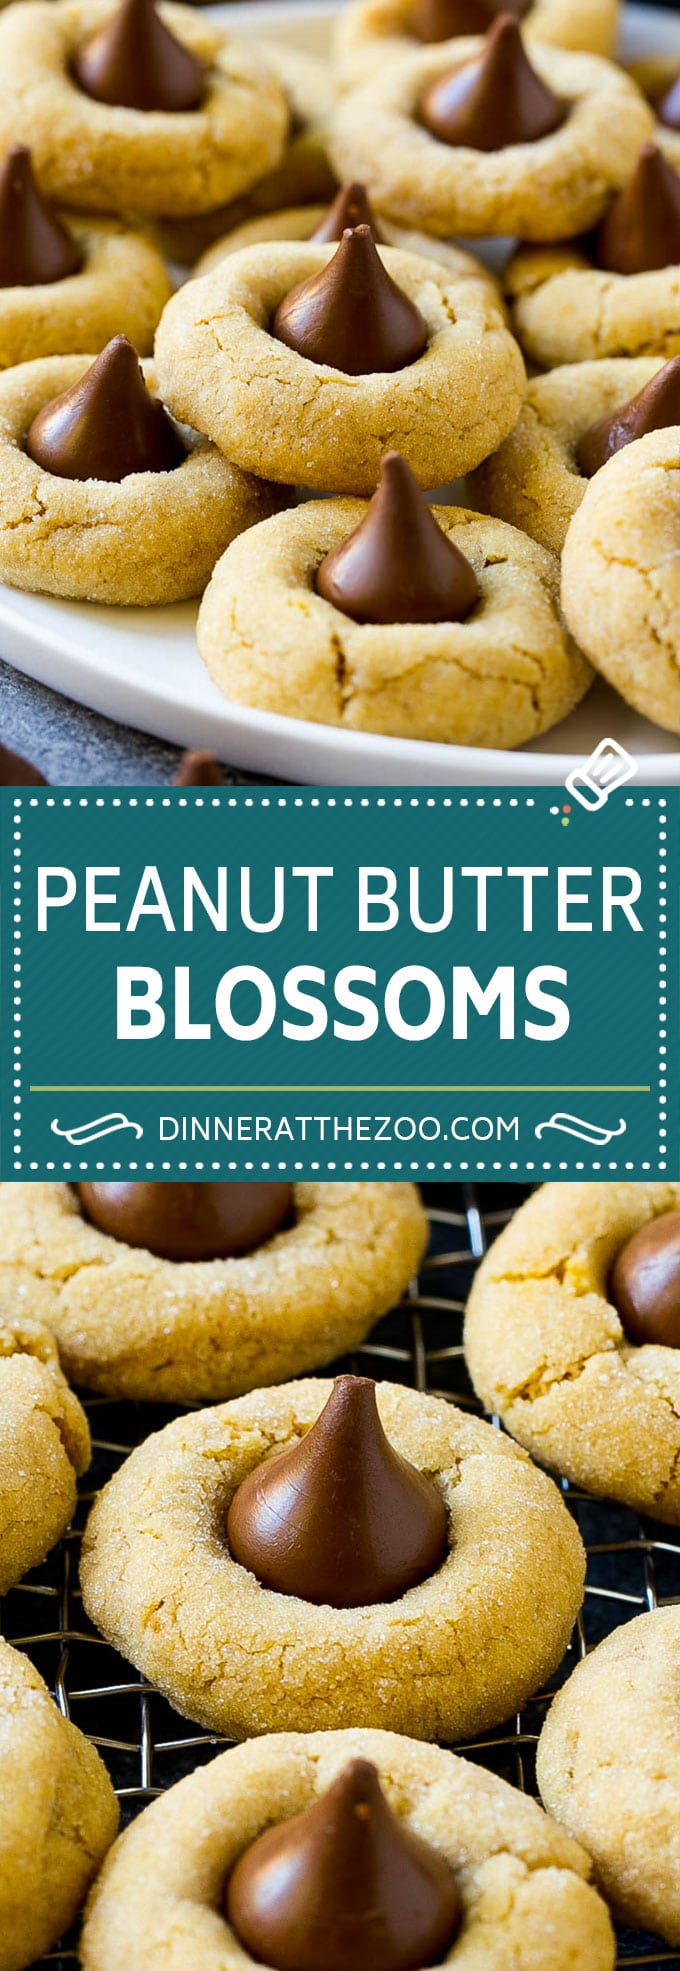 Peanut Butter Blossoms Recipe | Hershey Kiss Cookies | Chocolate Peanut Butter Cookies #cookies #peanutbutter #chocolate #dessert #baking #christmas #christmascookies #dinneratthezoo